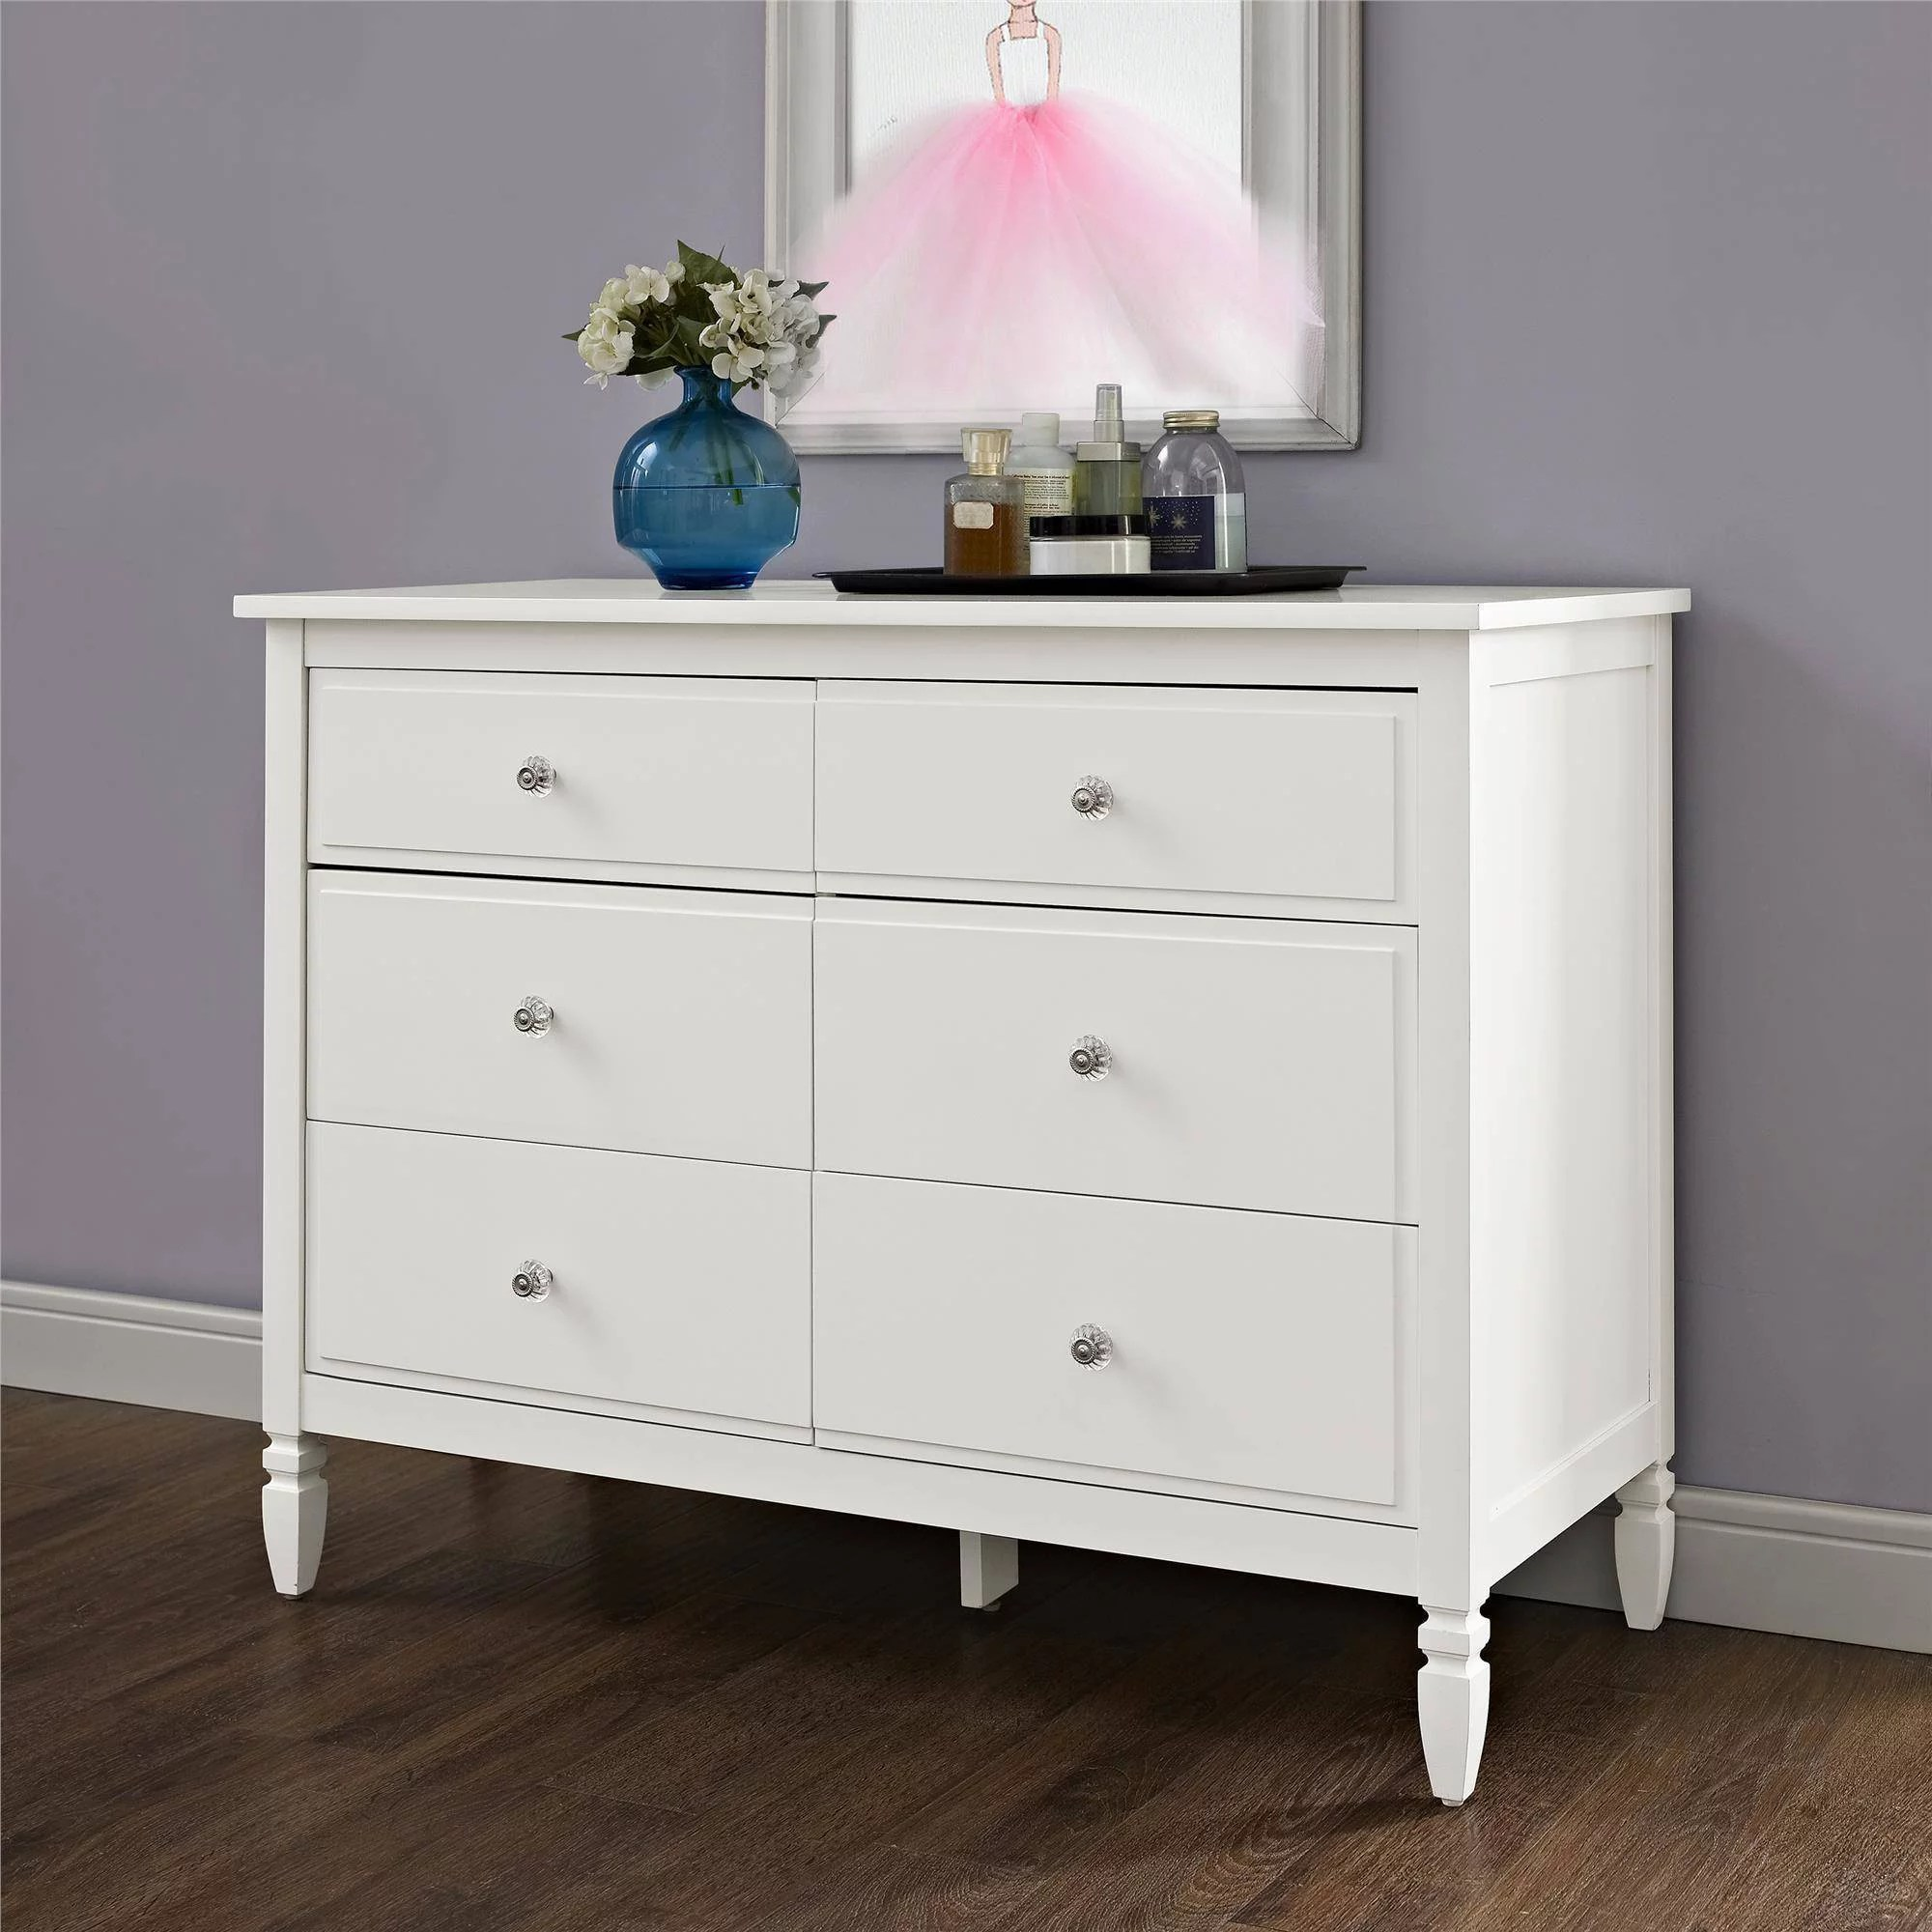 Better Homes and Gardens Bedroom Furniture  Walmartcom